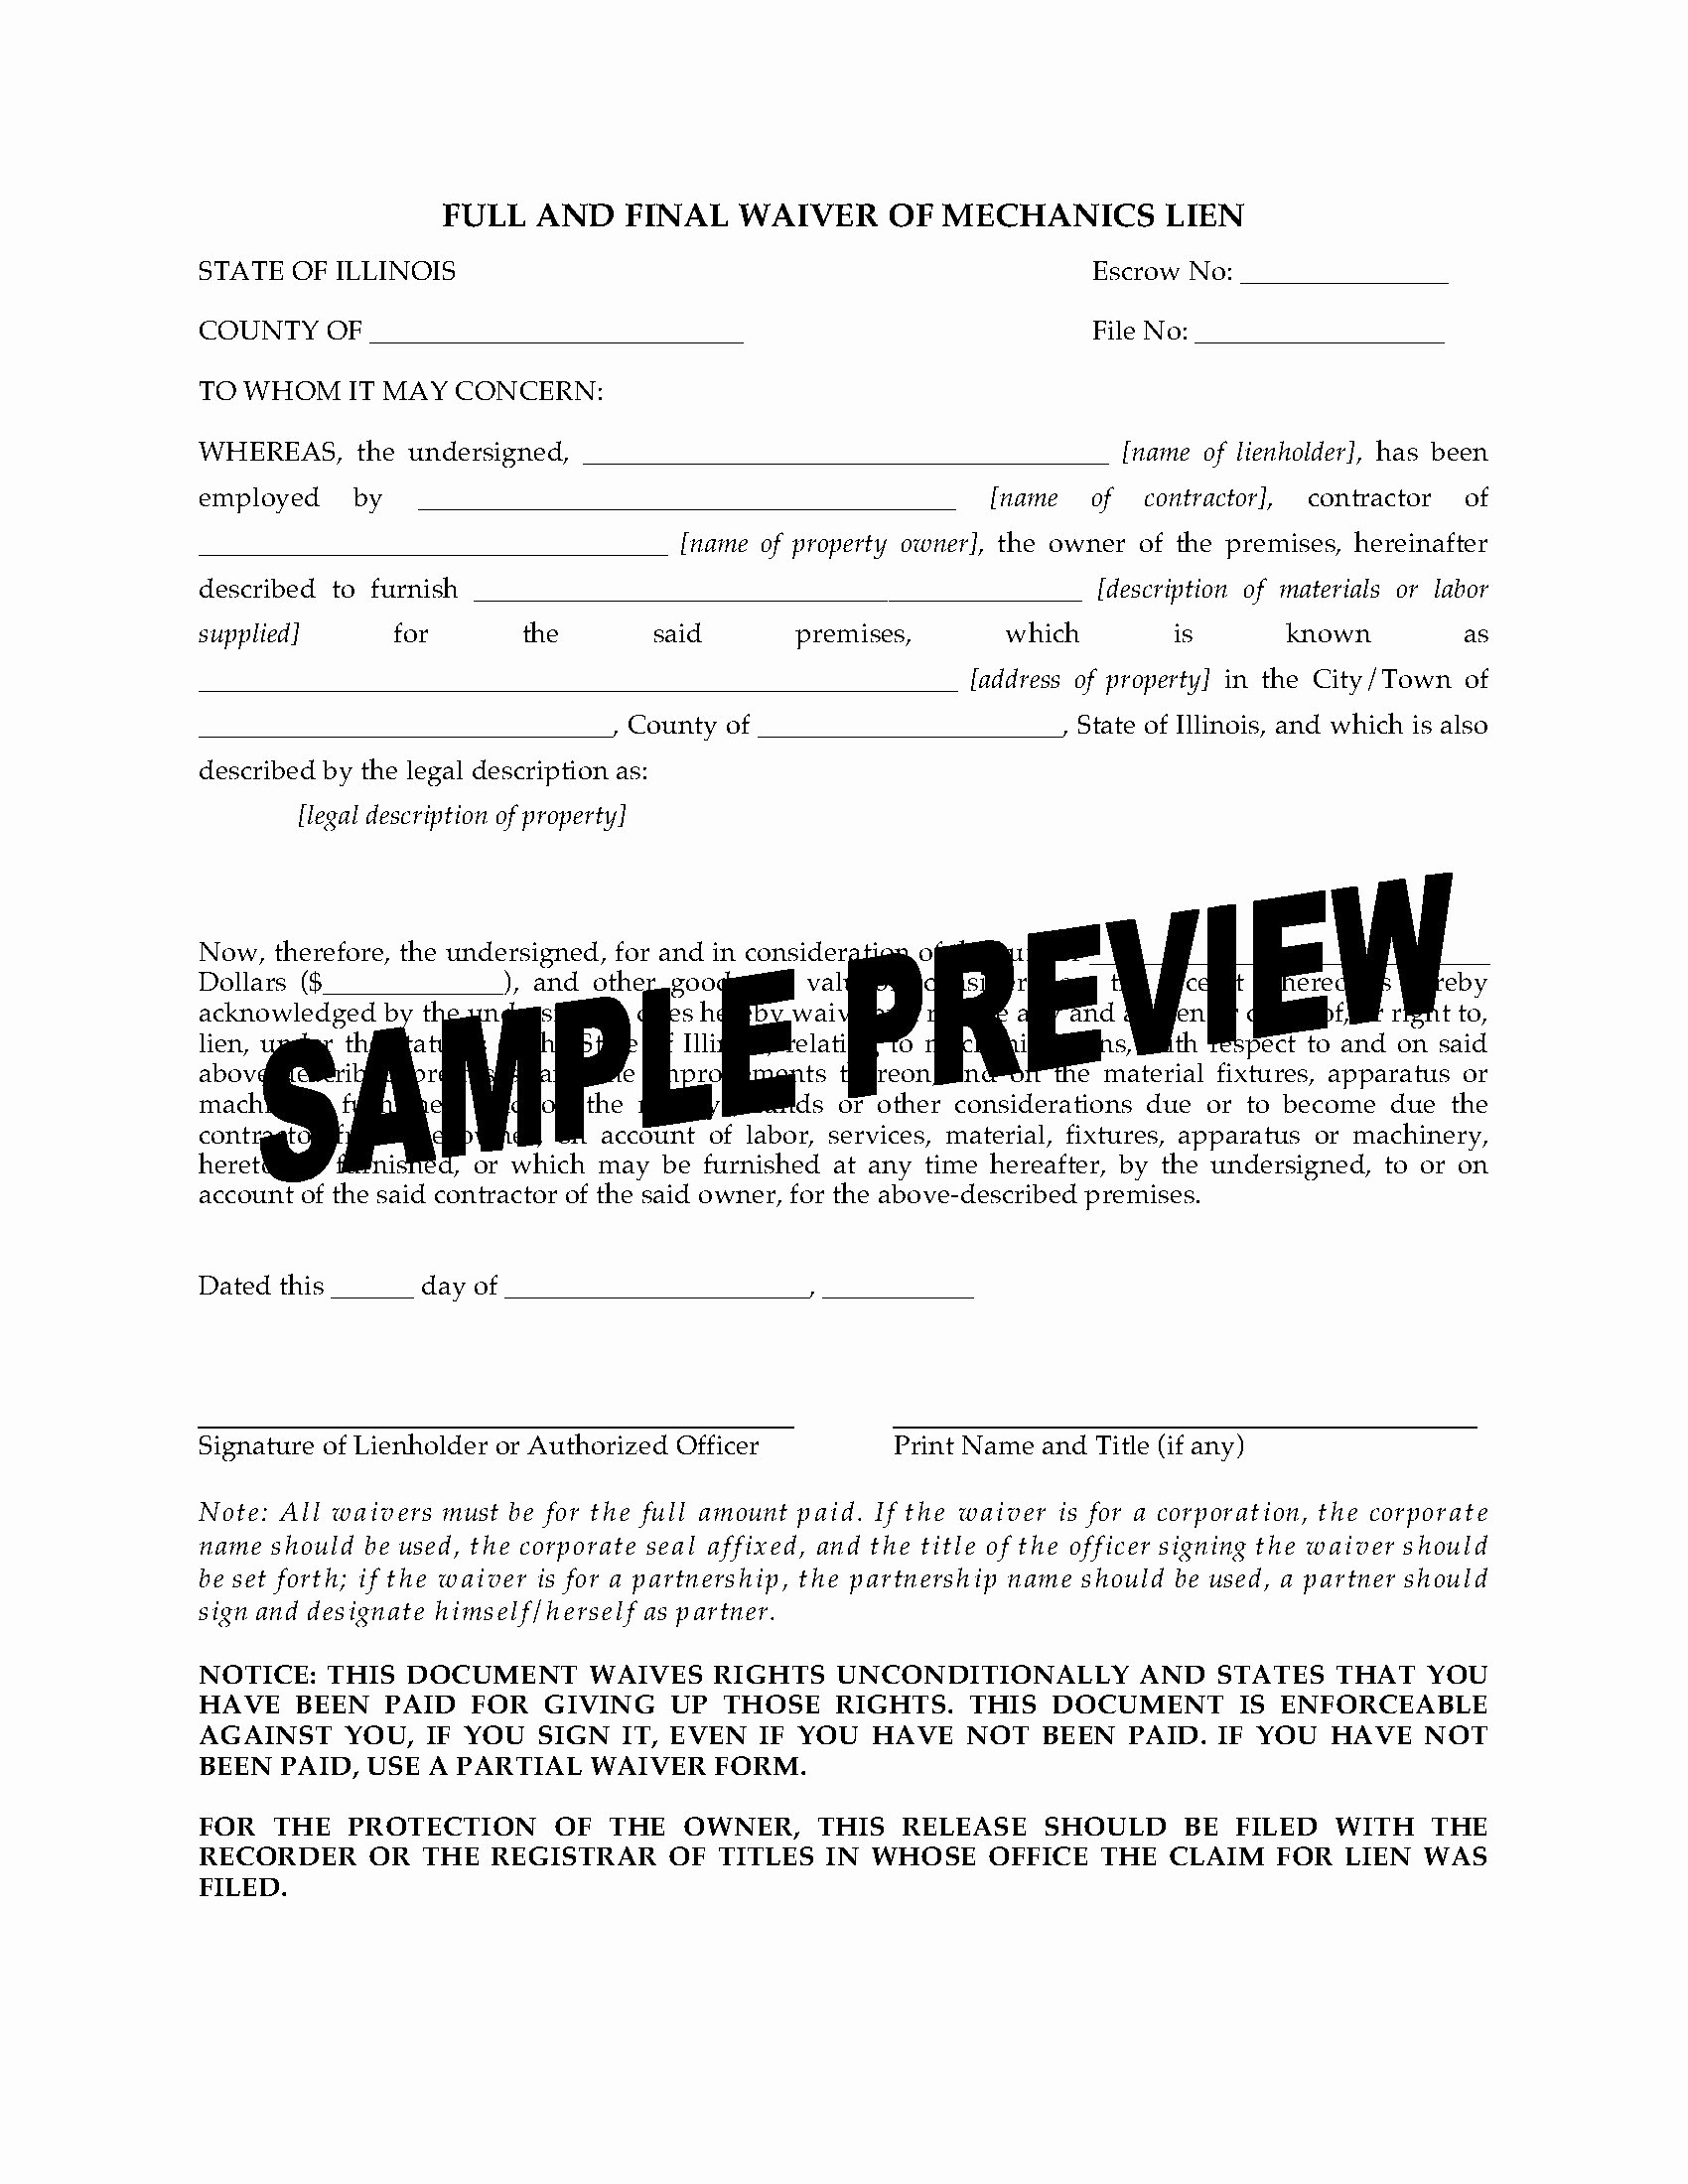 Final Lien Waiver Template Beautiful Illinois Full and Final Waiver Of Mechanics Lien